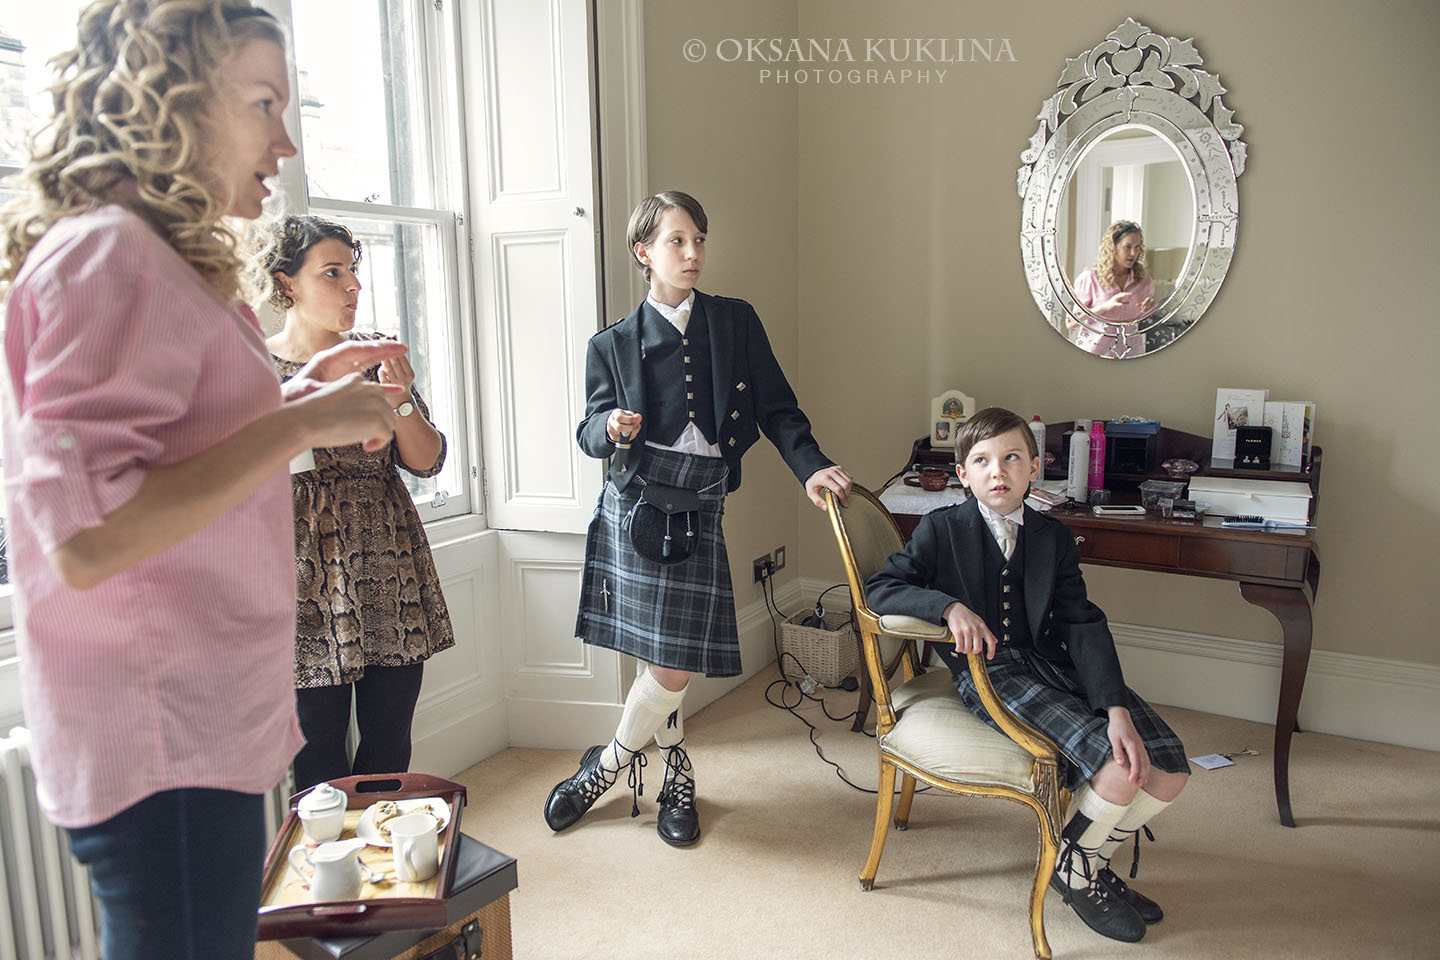 Getting ready before the wedding by © Oksana Kuklina Photography